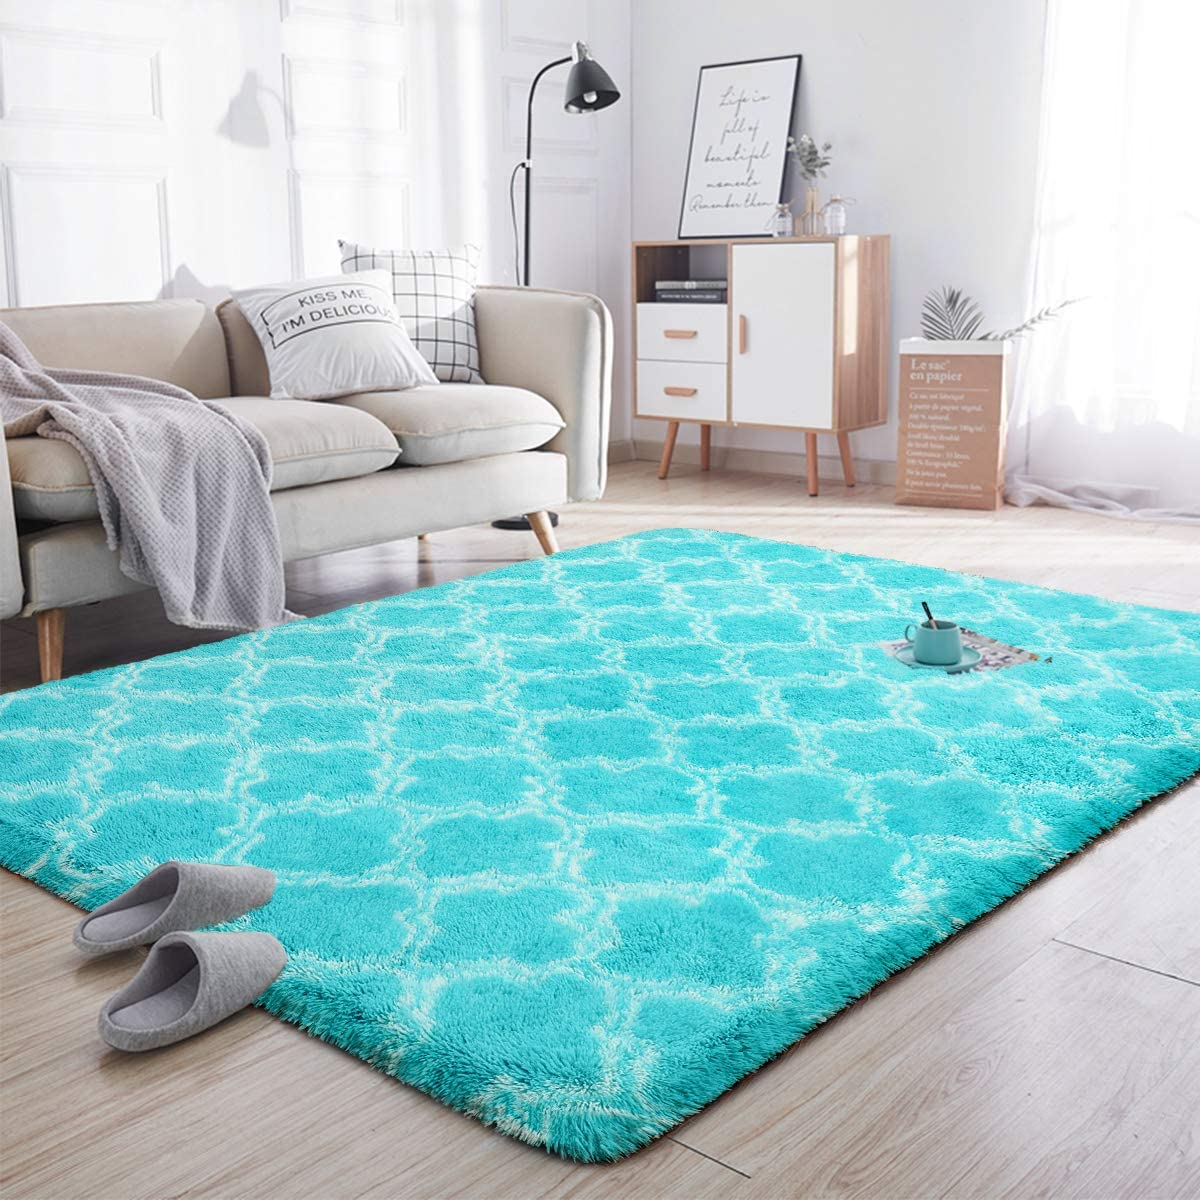 Noahas Soft Area Rugs for Bedroom Living Room Shaggy Patterned Fluffy Carpets for Nursery Baby Rooms Silky Smooth Fuzzy Kids Play Mats Christmas Home Decor Rug, 5ft x 8ft, Teal Blue